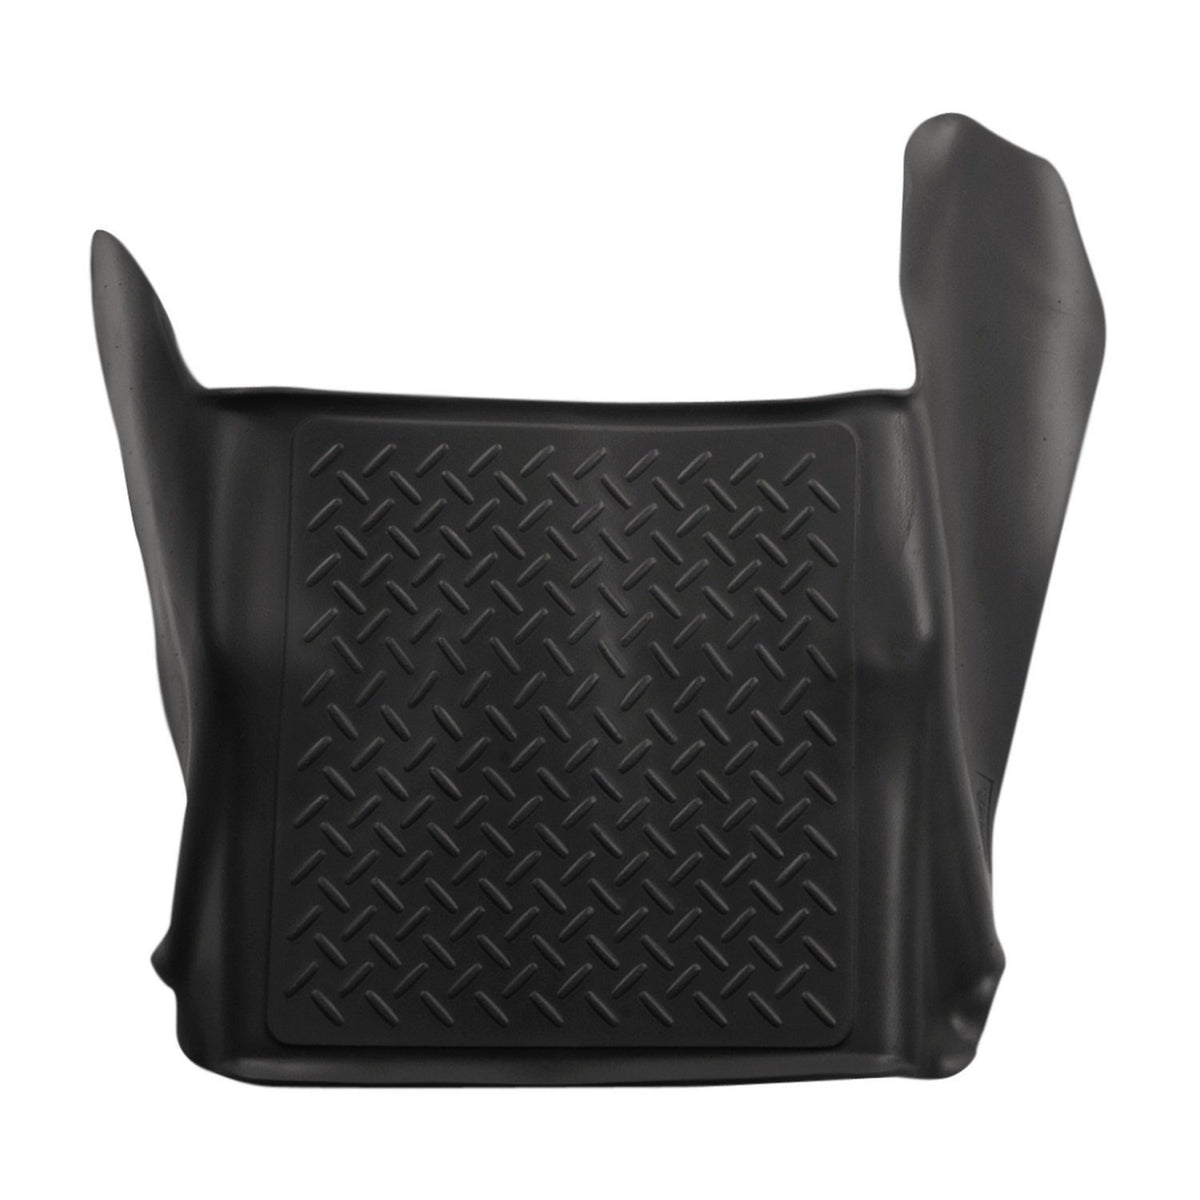 2009-2011 Ford F-150 Super/Crew Cab Classic Style Center Hump Black Floor Liner by Husky Liners (83421) - Modern Automotive Performance